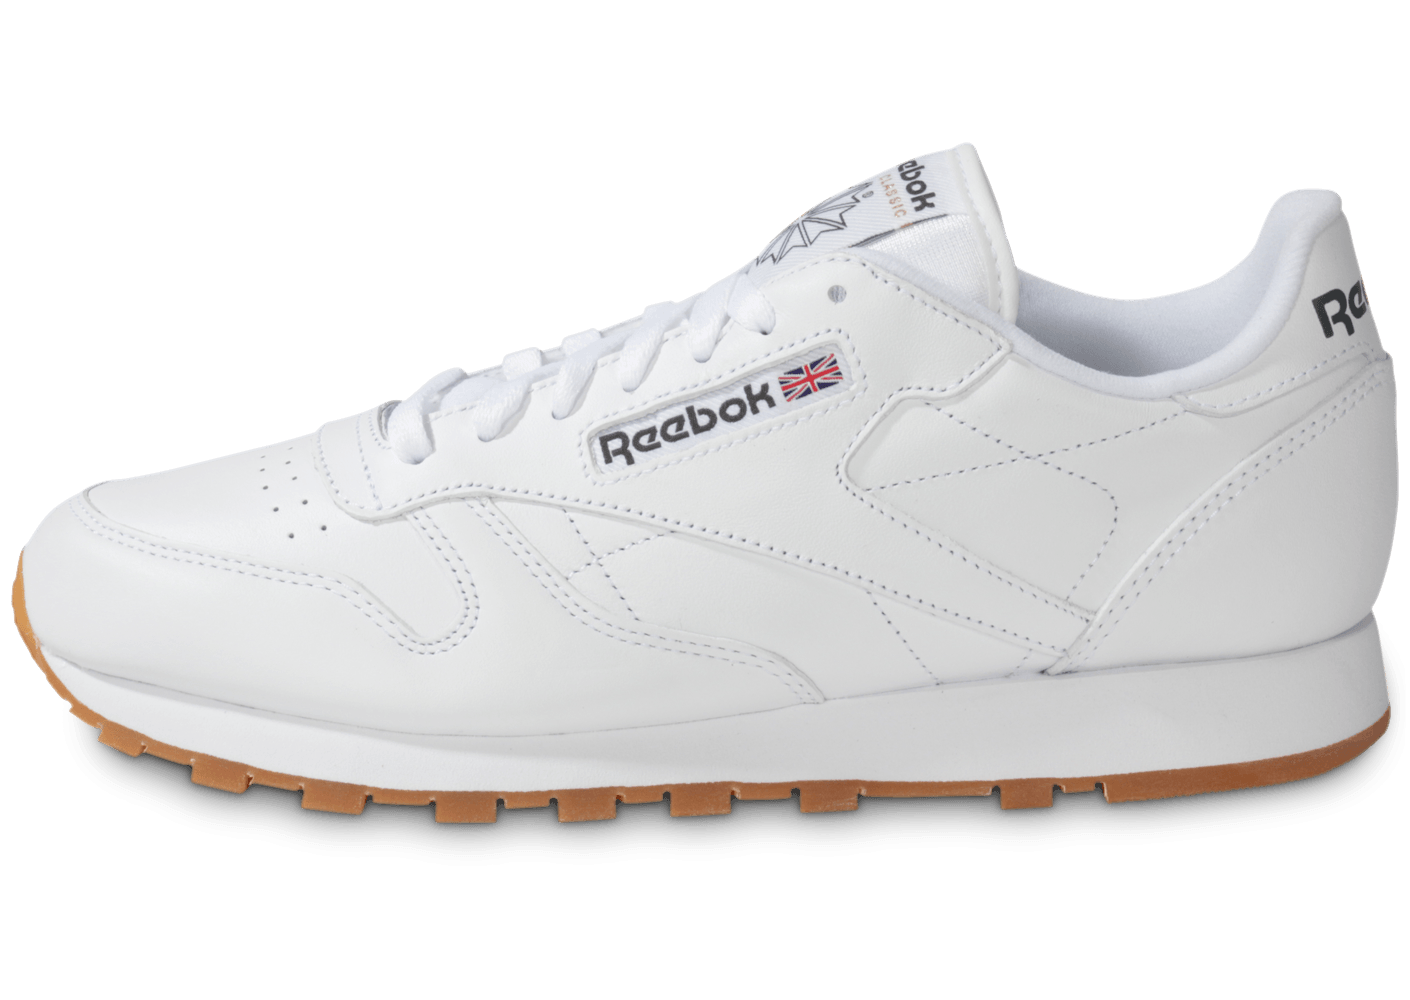 47fa95b364fd0 Reebok Classic Leather Blanche Gum - Chaussures Baskets homme - Chausport